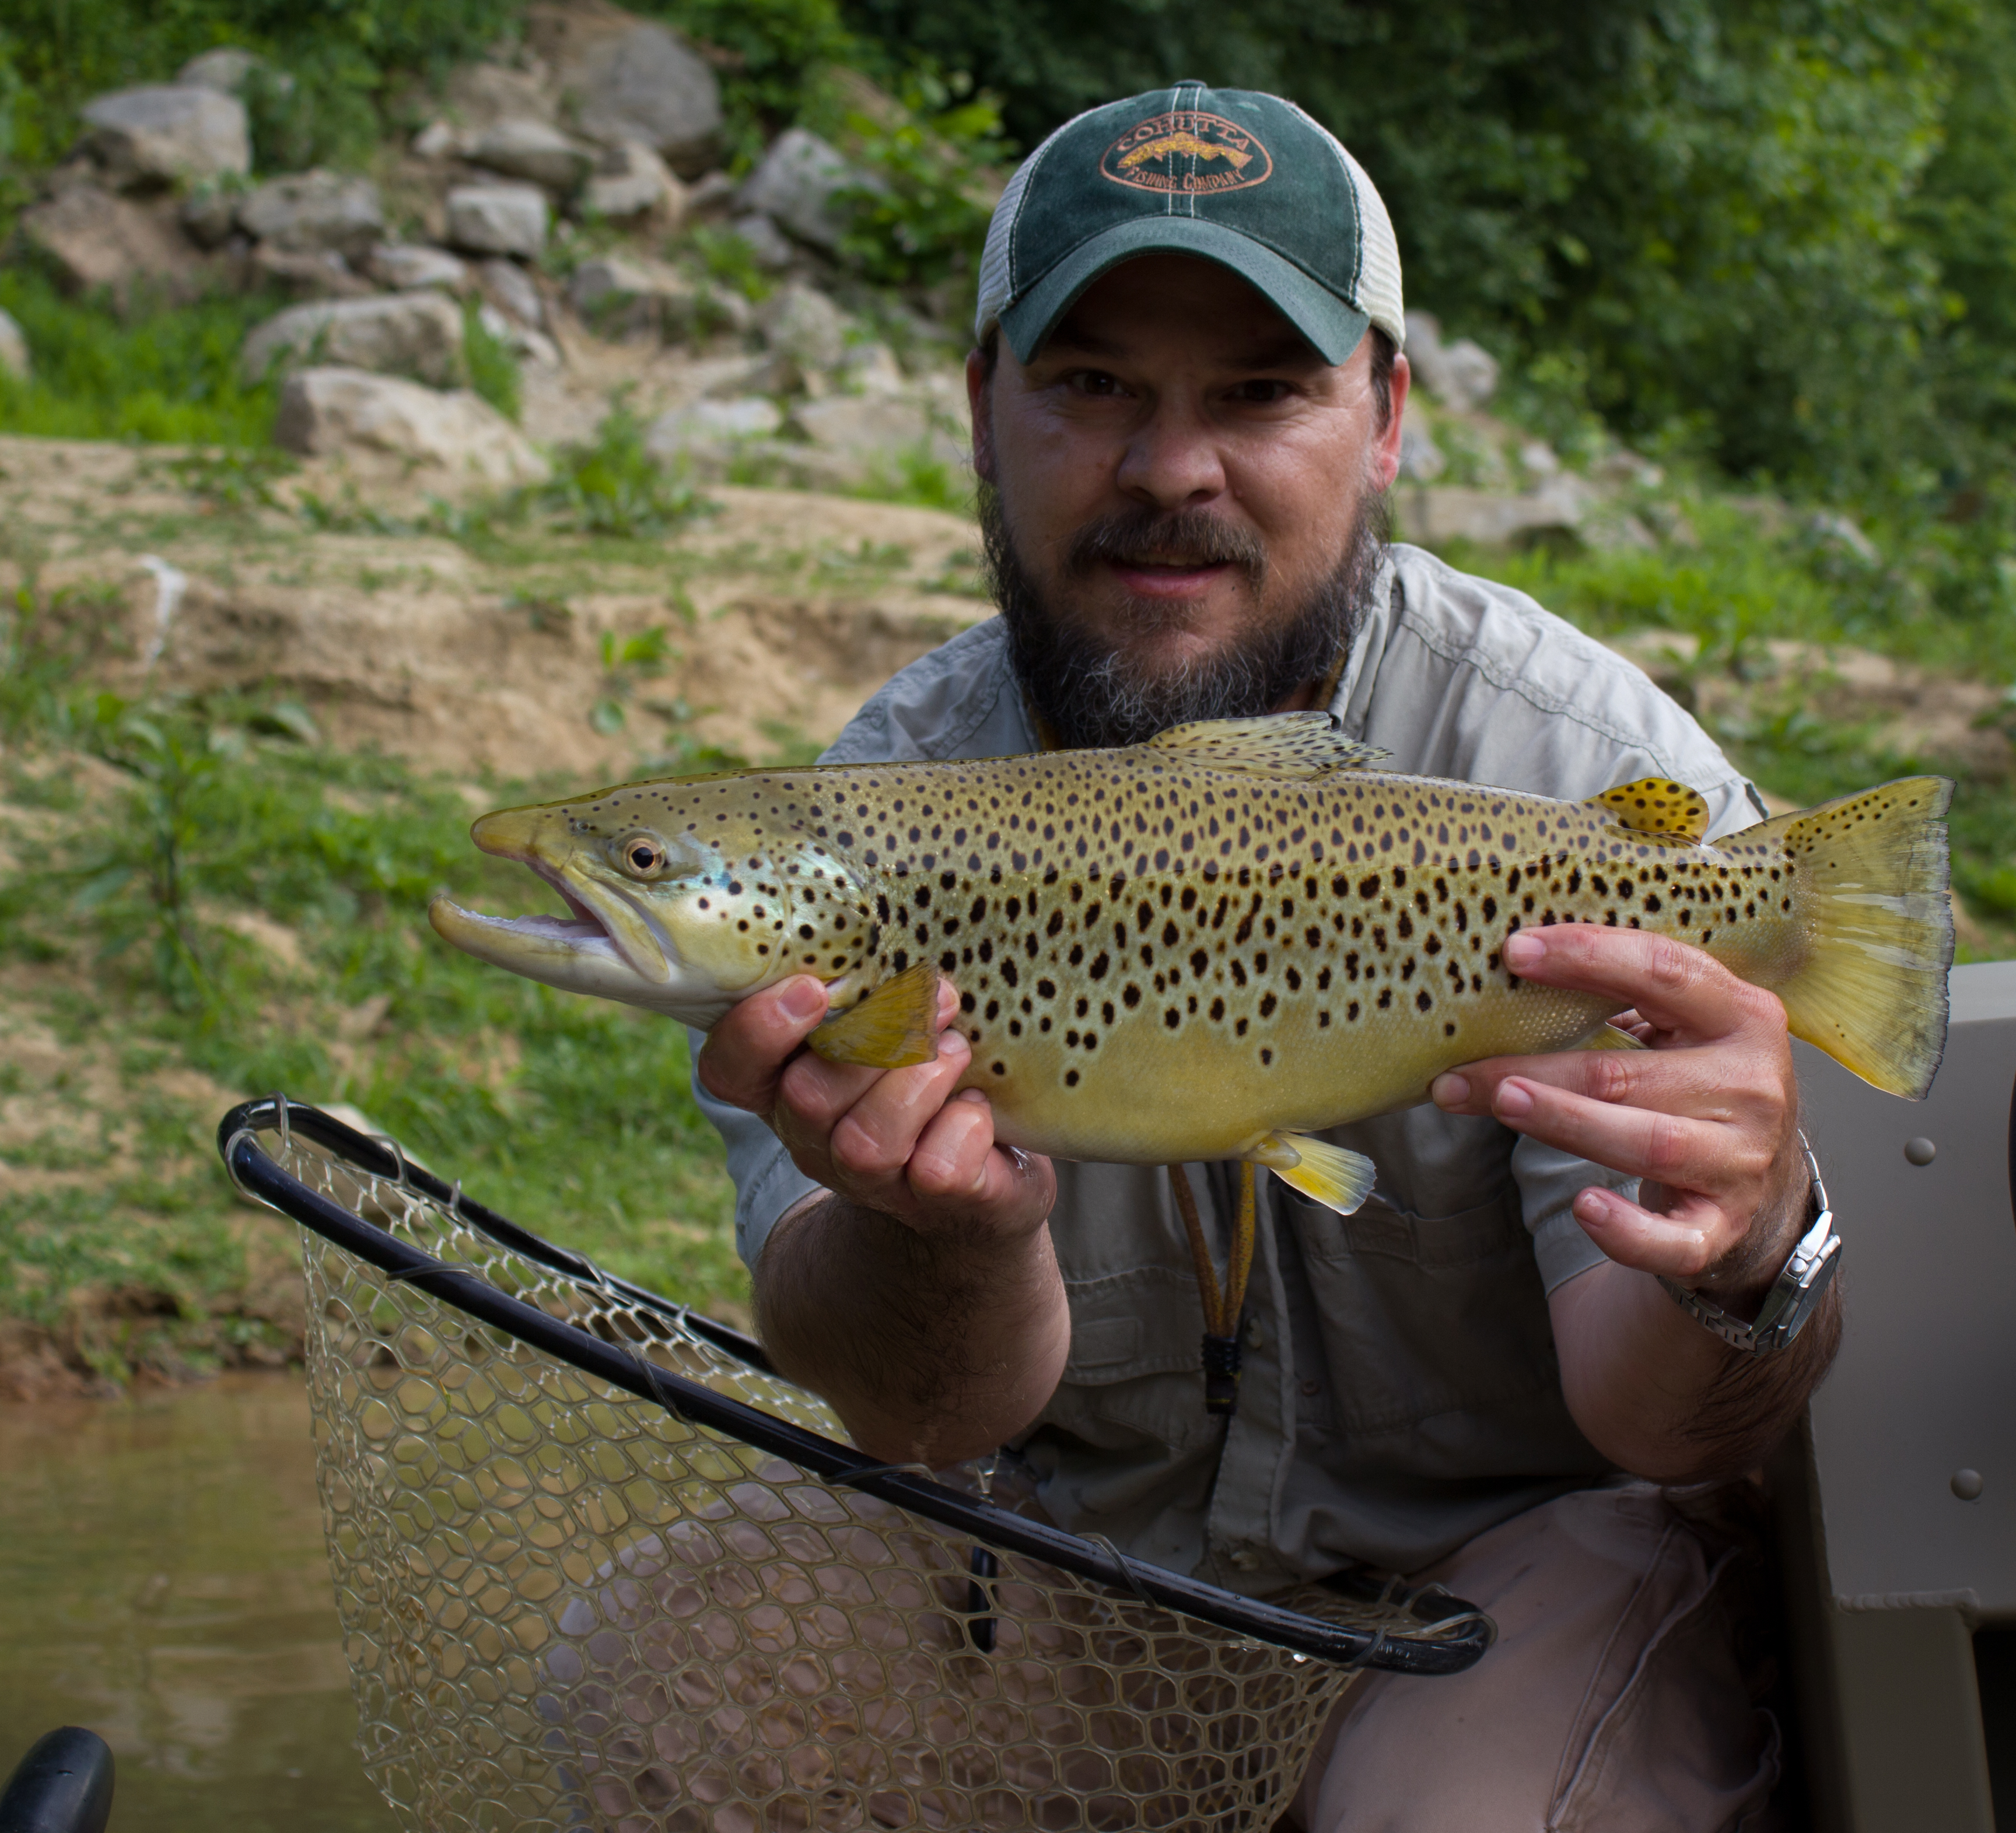 Chattahoochee river images femalecelebrity for Chattahoochee river fishing